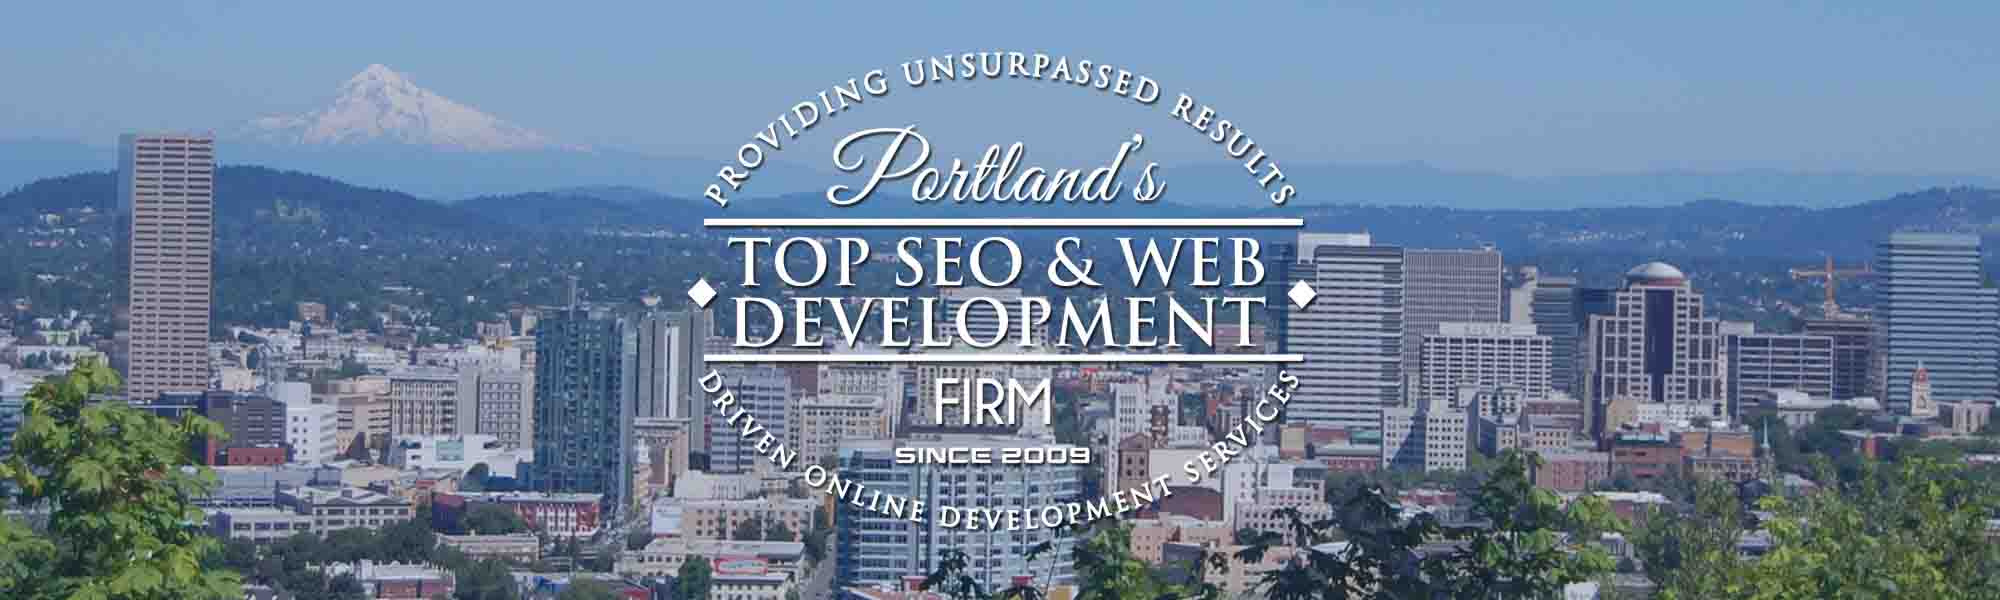 SEO-Services-Incorp-Portland-seo-consultant- seo agency